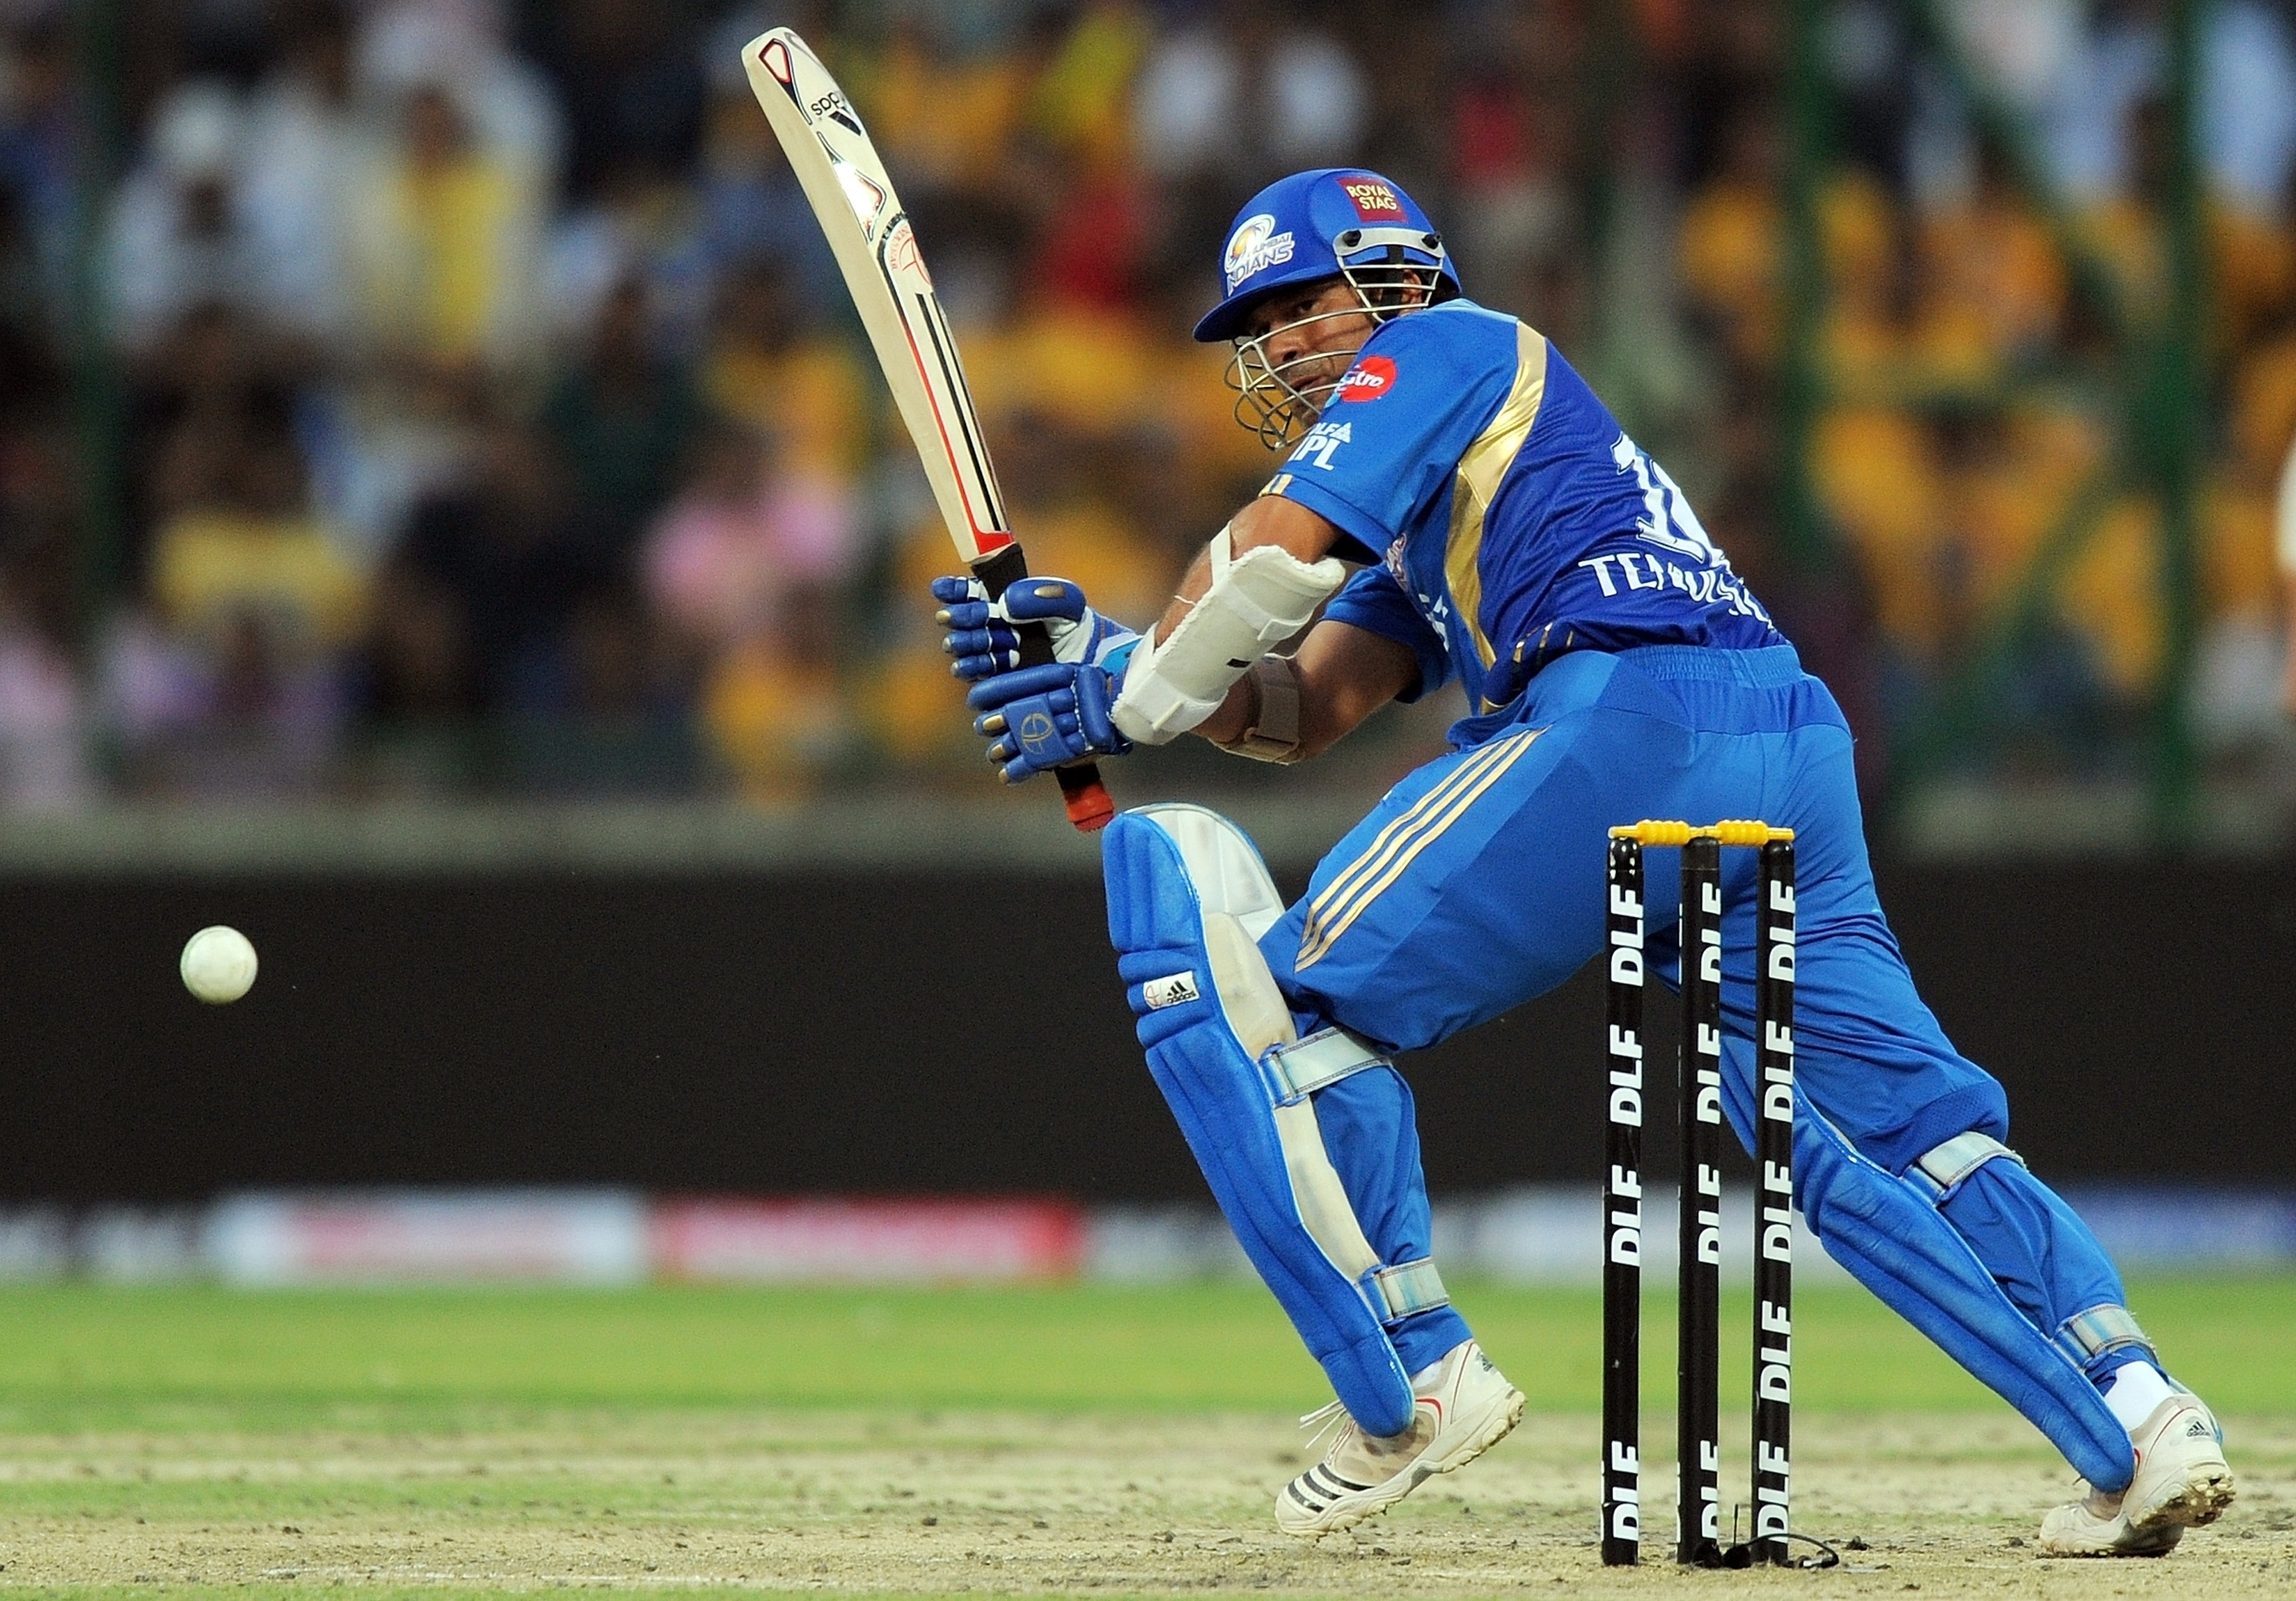 It was Sachin Tendulkar who decided to take center stage with the bat for his team as he finished the match on an unbeaten personal score of 46 and with 25 balls to spare. (AFP PHOTO)